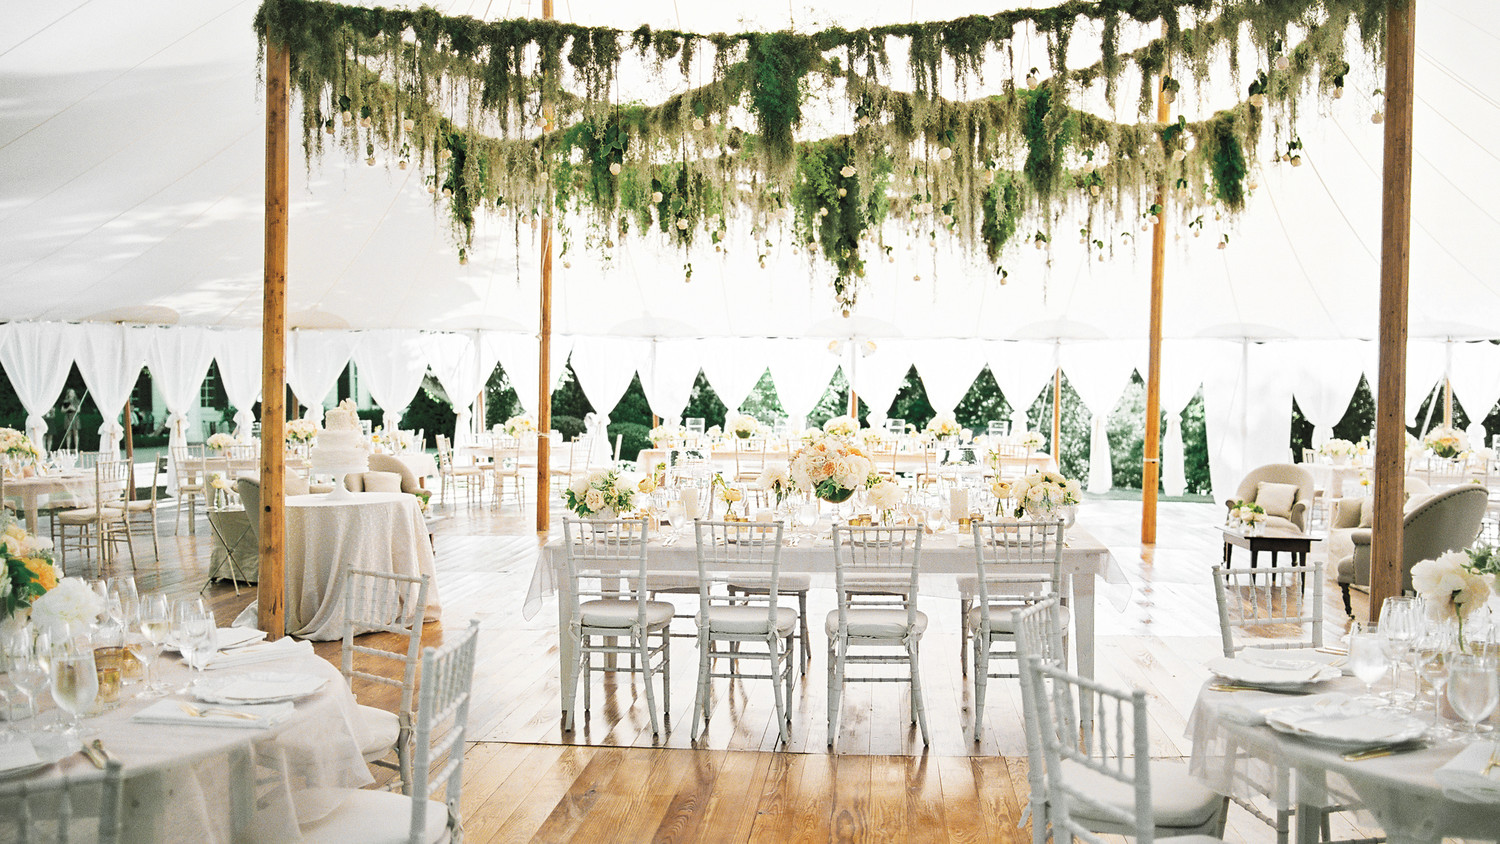 28 tent decorating ideas that will upgrade your wedding reception 28 tent decorating ideas that will upgrade your wedding reception martha stewart weddings solutioingenieria Image collections